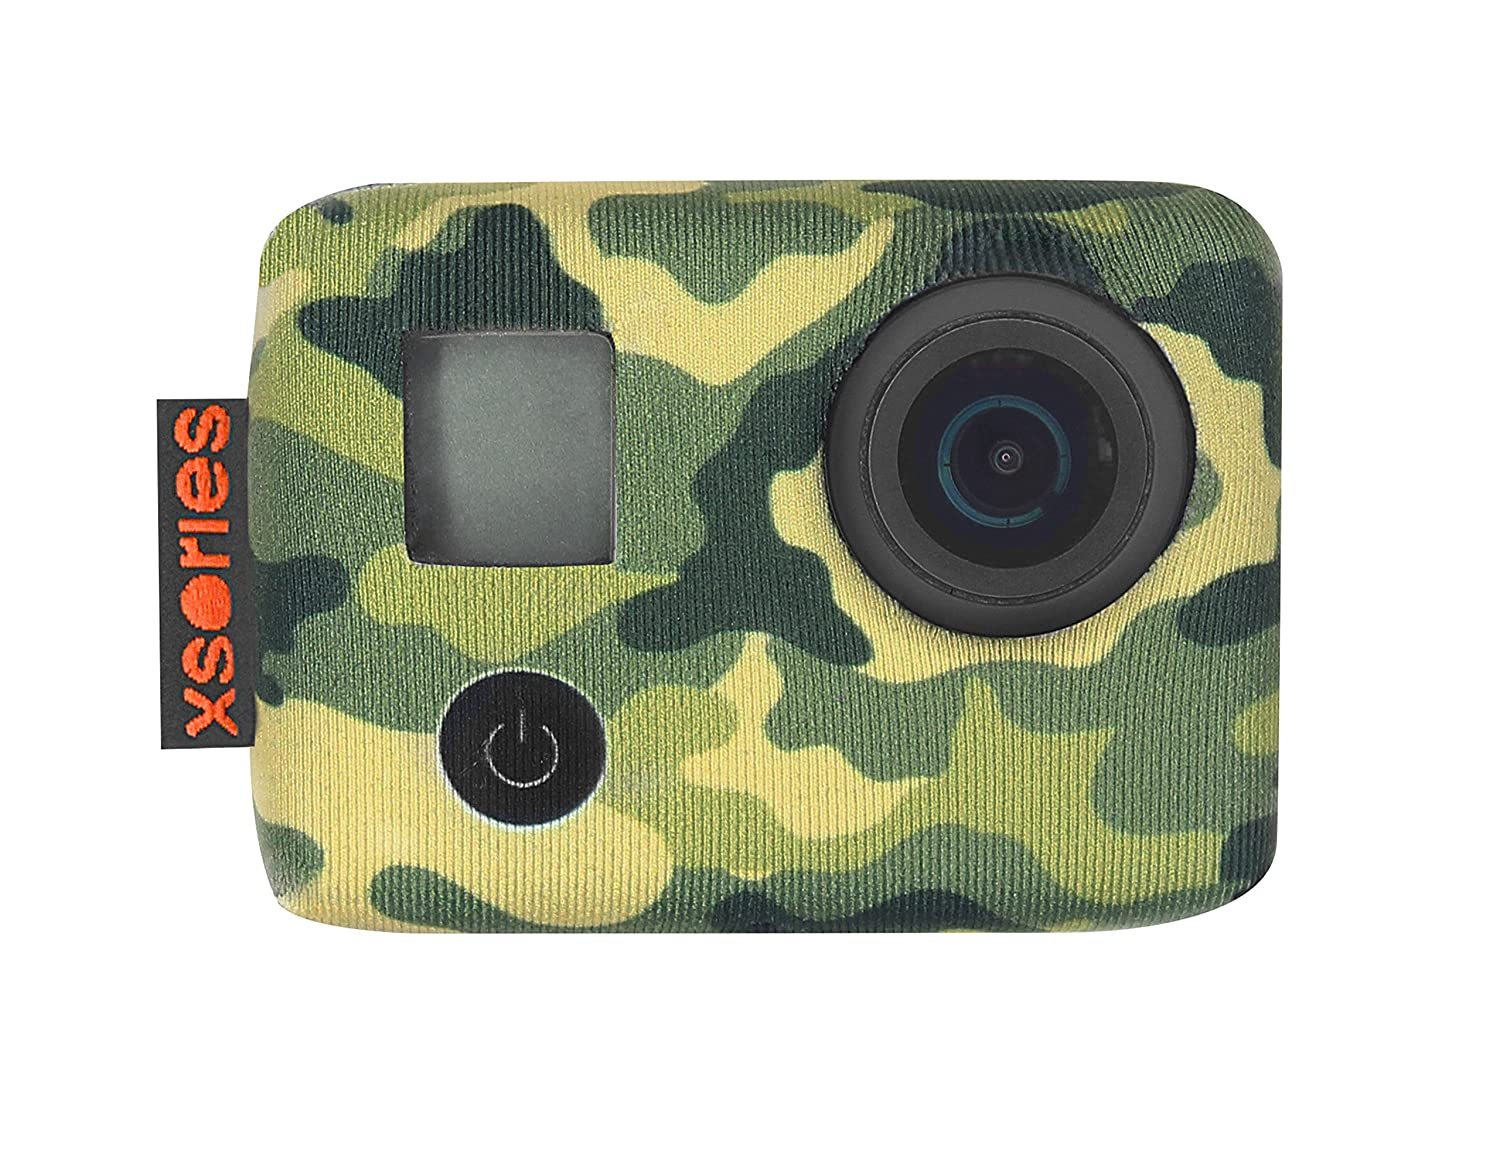 XSories TuXSedo Lite, Neoprene Jacket For GoPro HERO3, HERO3+, HERO4 Cameras Without Housing (Jungle Camo) TXSD3A808